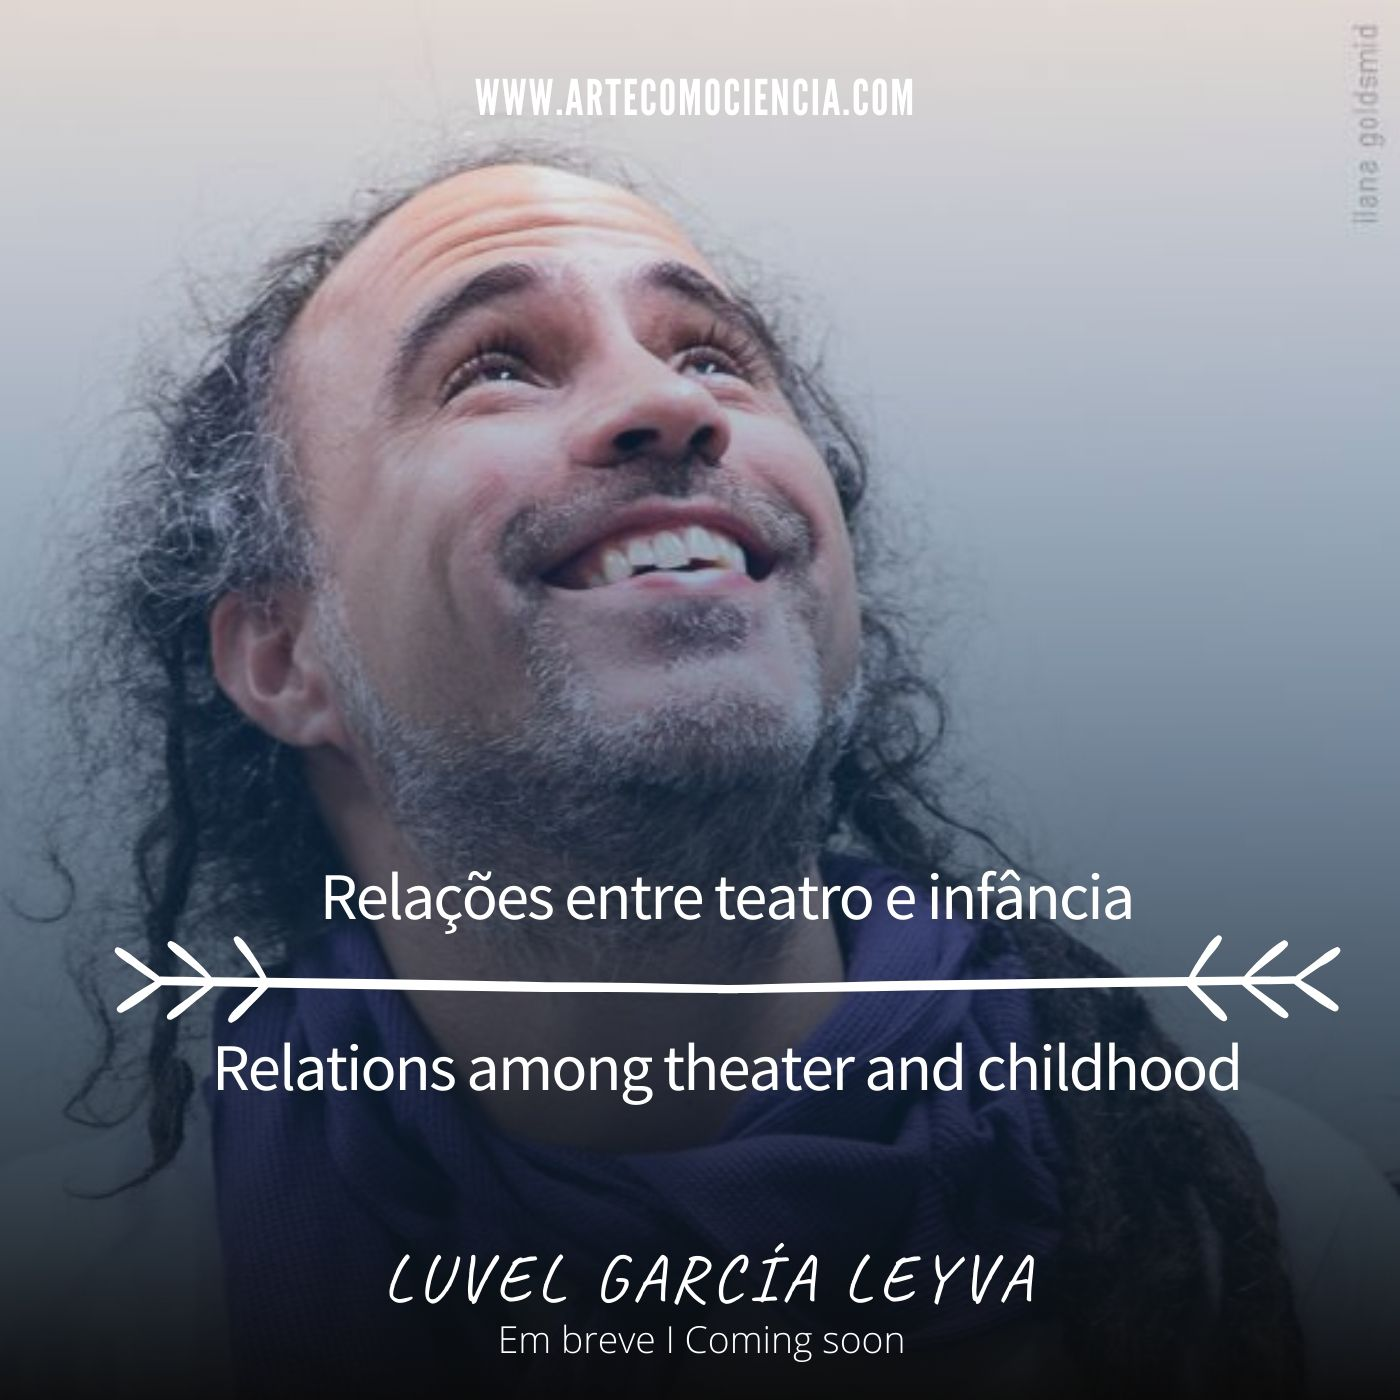 Luvel García Leyva: Relações entre teatro e infância/ Relations among theater and childhood